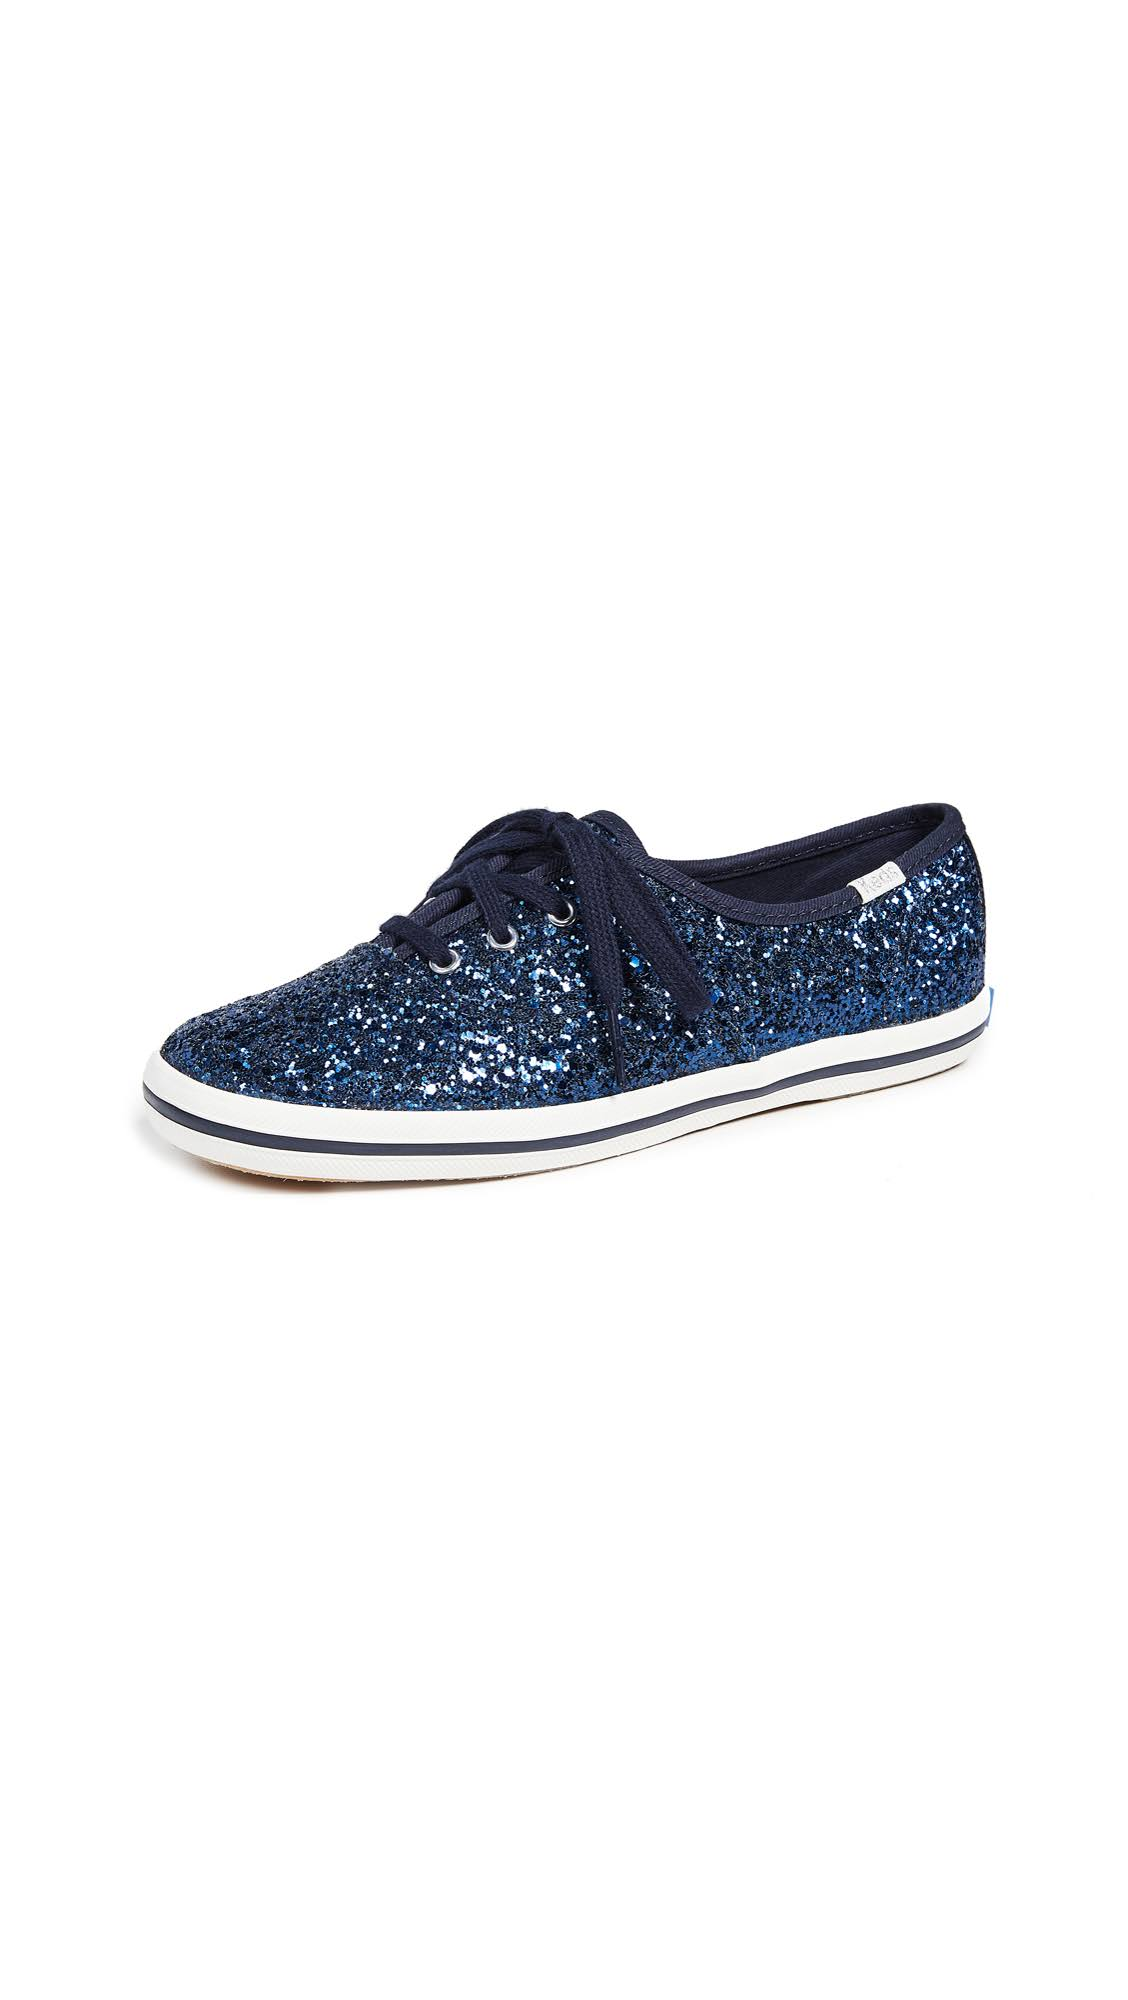 X Keds 5 Spade Champion Kate Navy Sneakers tsdhrxQC